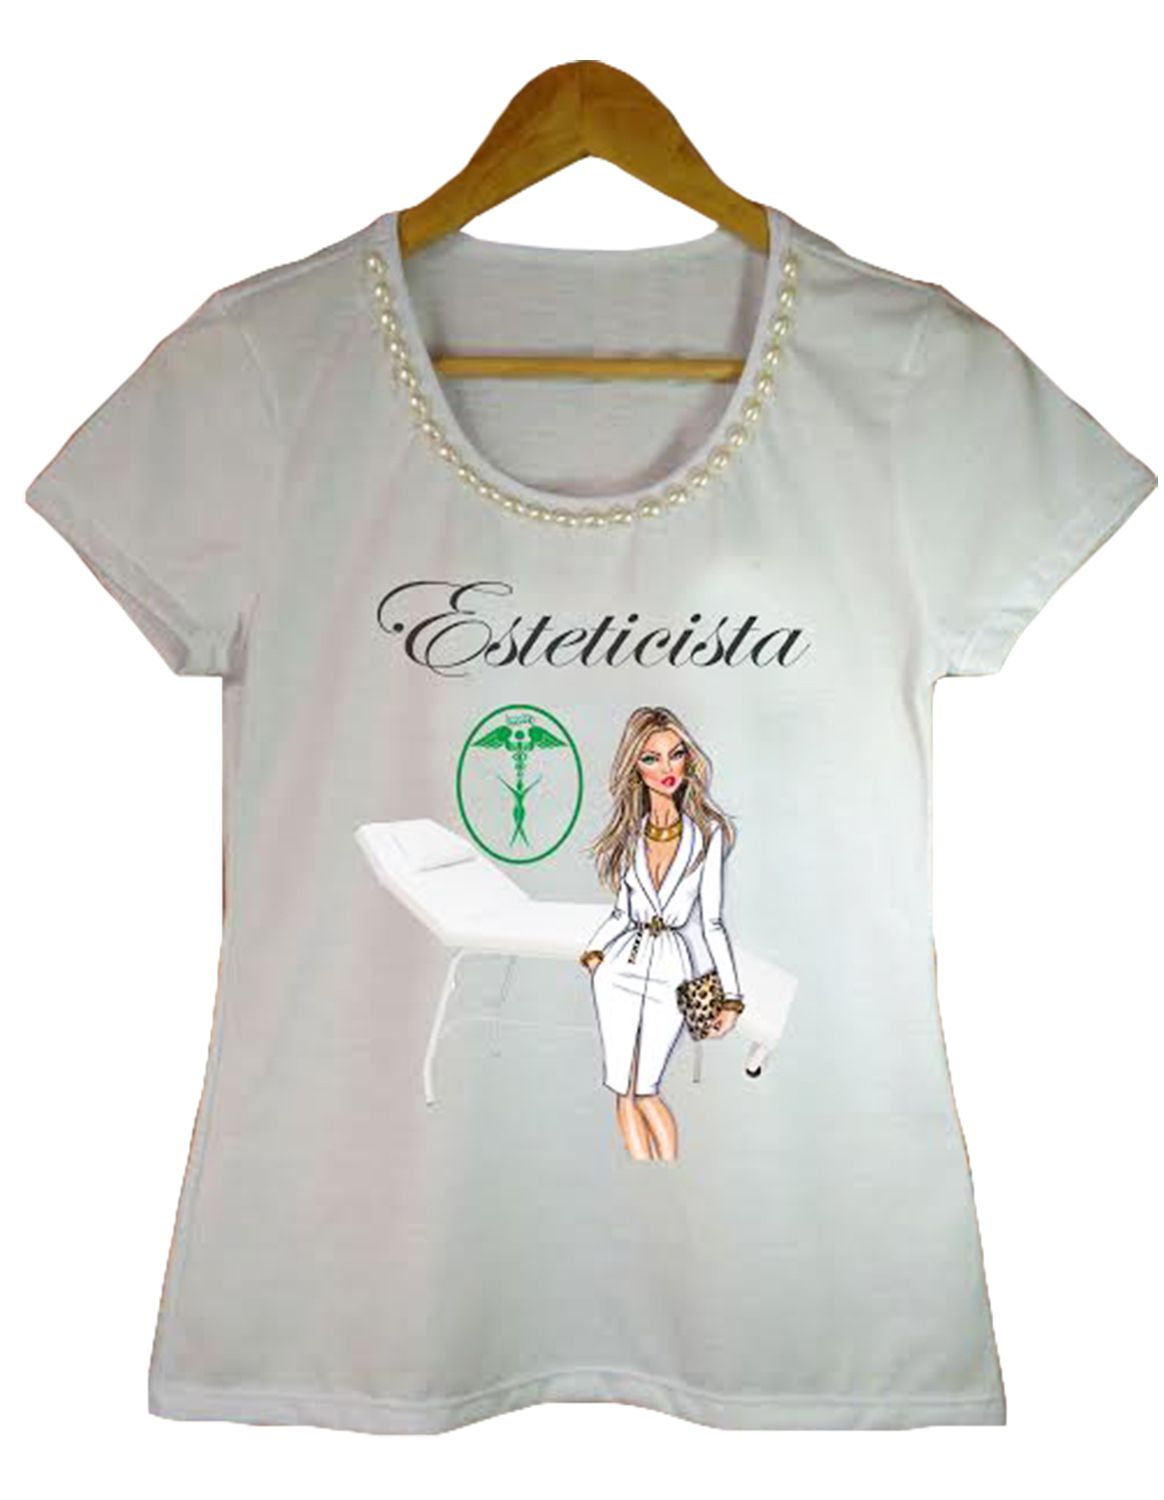 2f37510cb T-shirt adulta feminina bordada esteticista